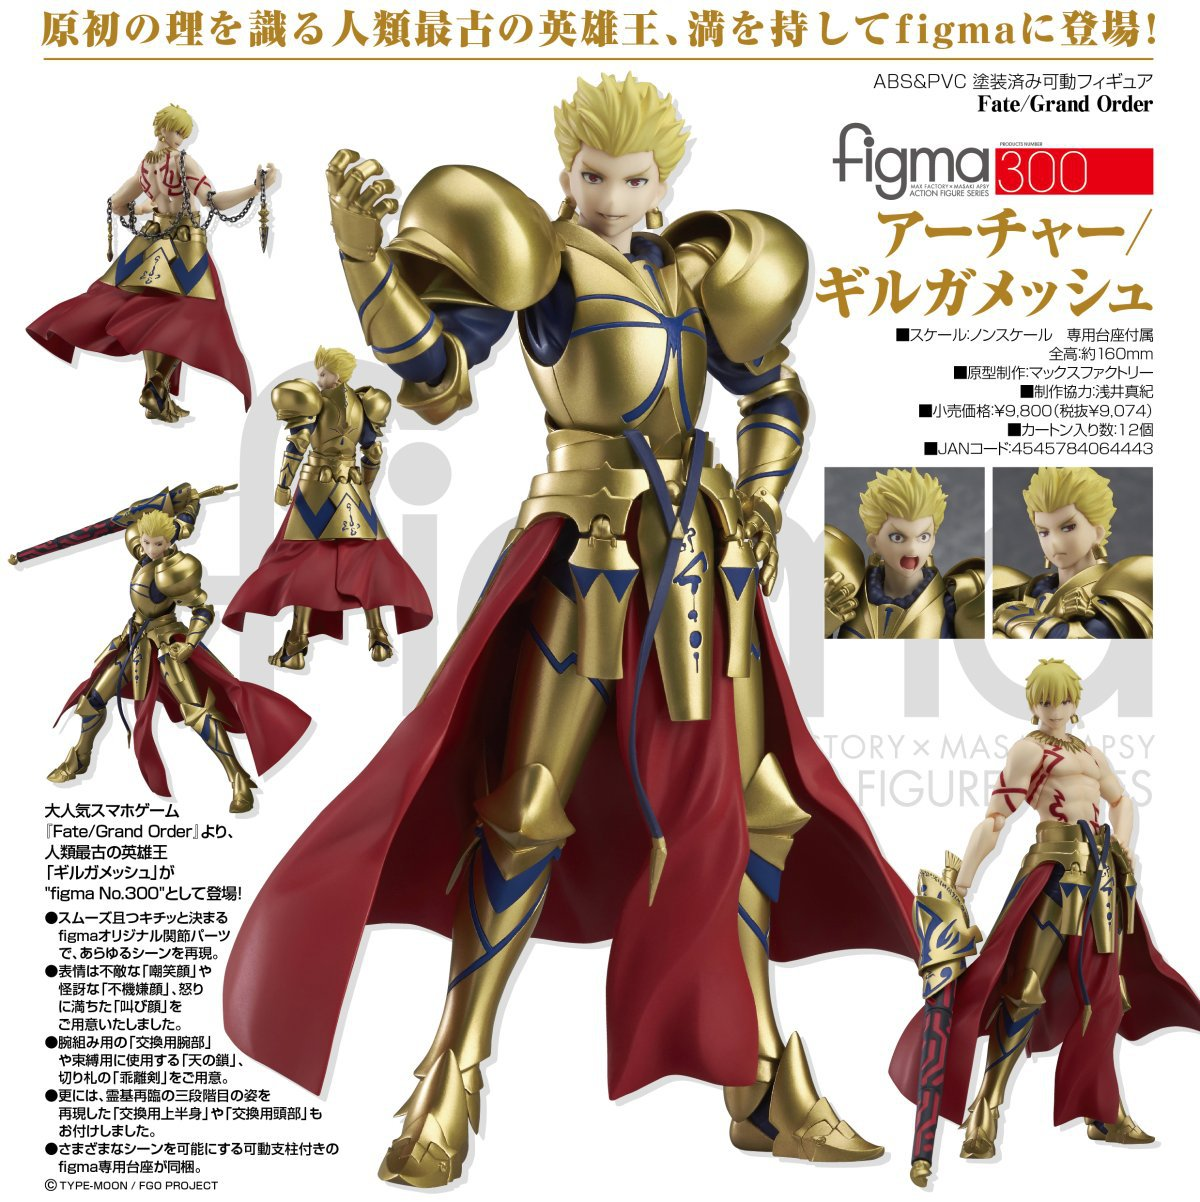 Japanese Anime 15cm Fate/stay Night fate Grand Order Archer Gilgamesh Figma 300# PVC Action Figure Model Collection Doll Gift